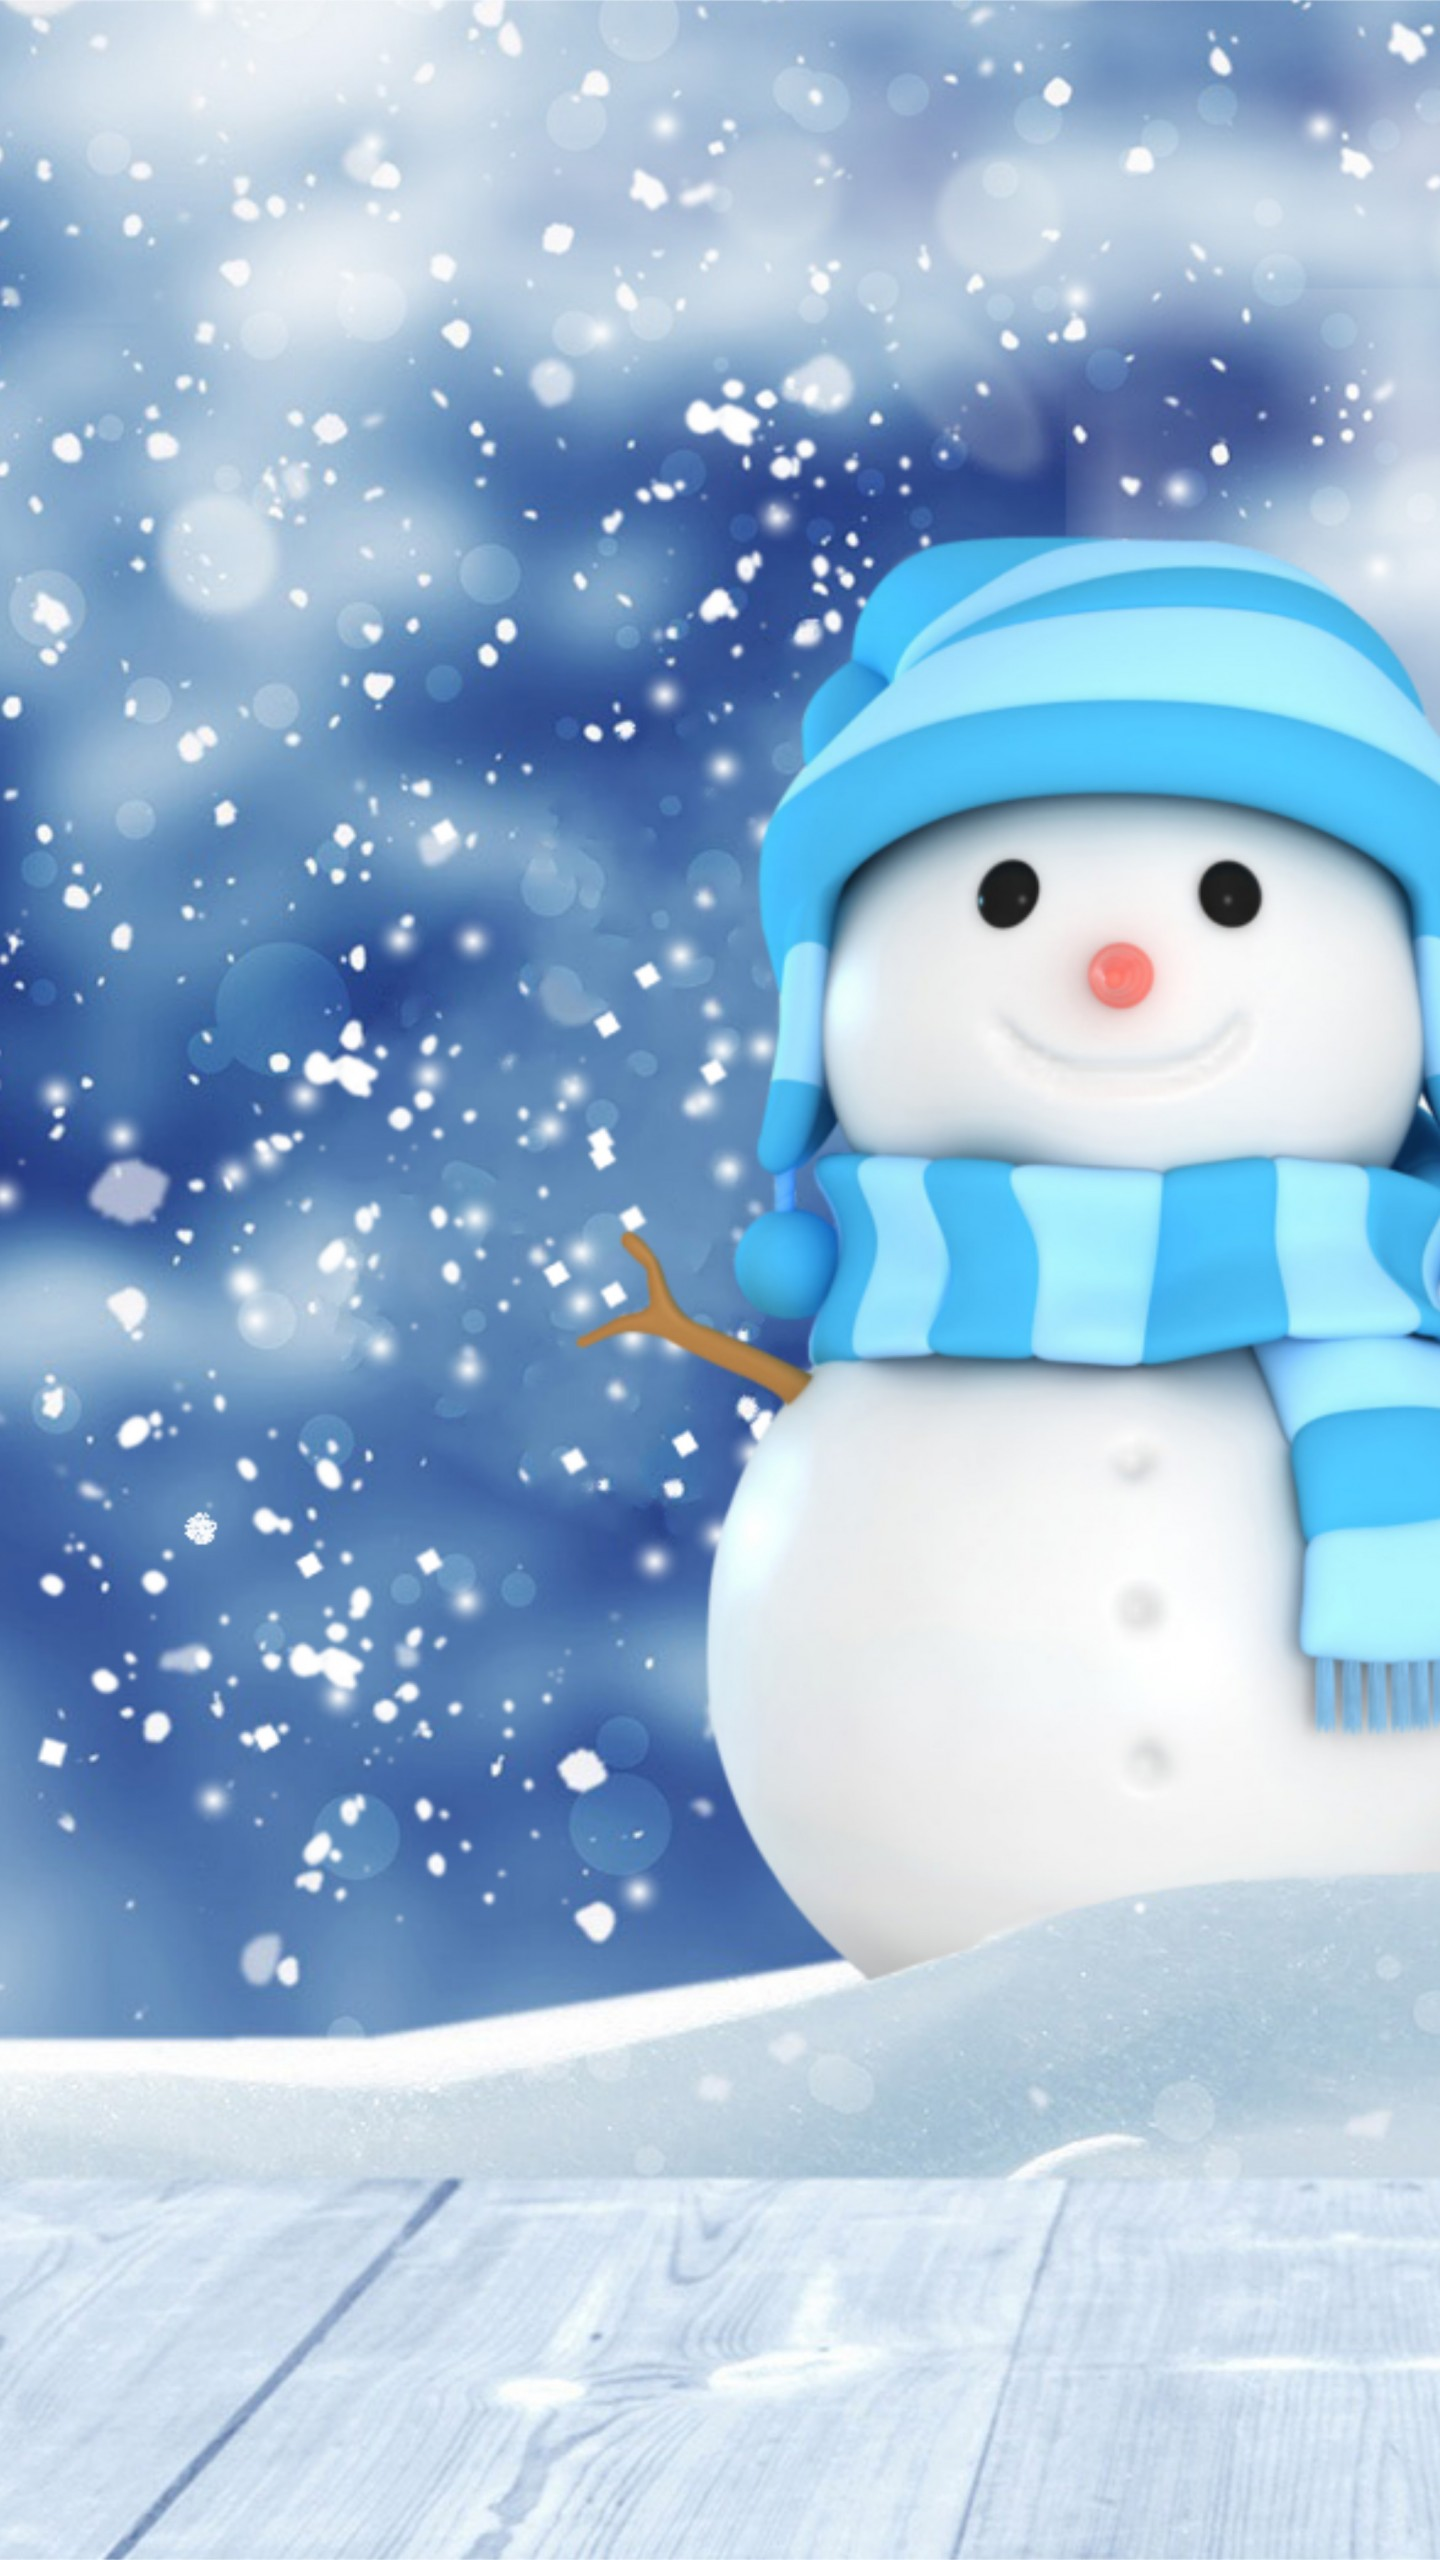 Stock Images Christmas New Year Snow Winter Snowman